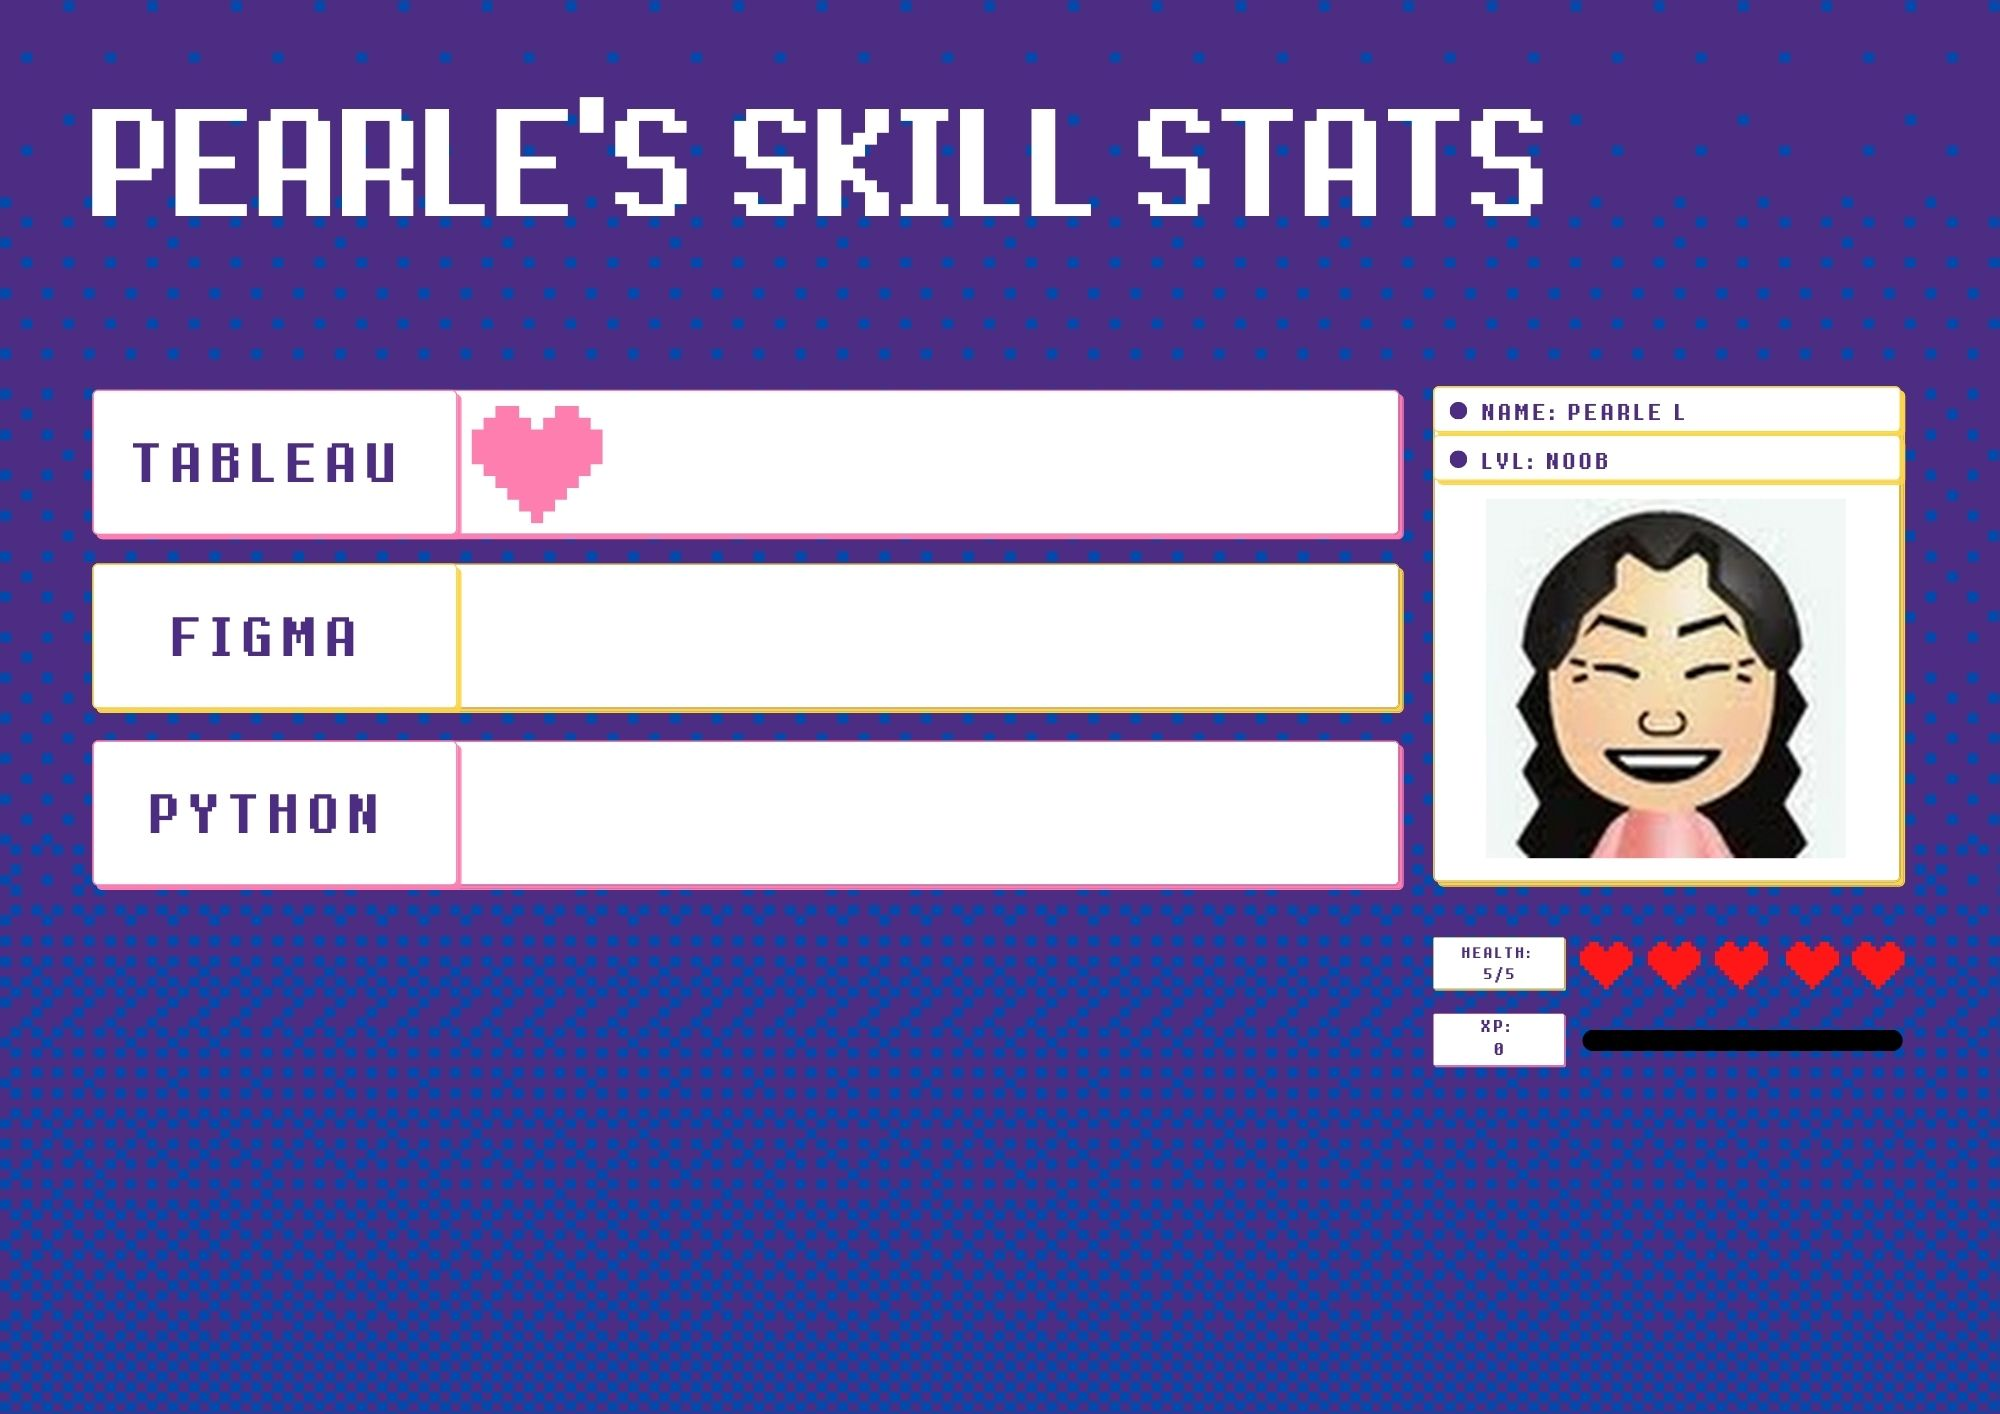 A purple card depicting Pearle's skills with Tableau, Figma, and Python, similar to a video game character's battle stats. Stats are Pearle's starting skills, pre-tutorial.